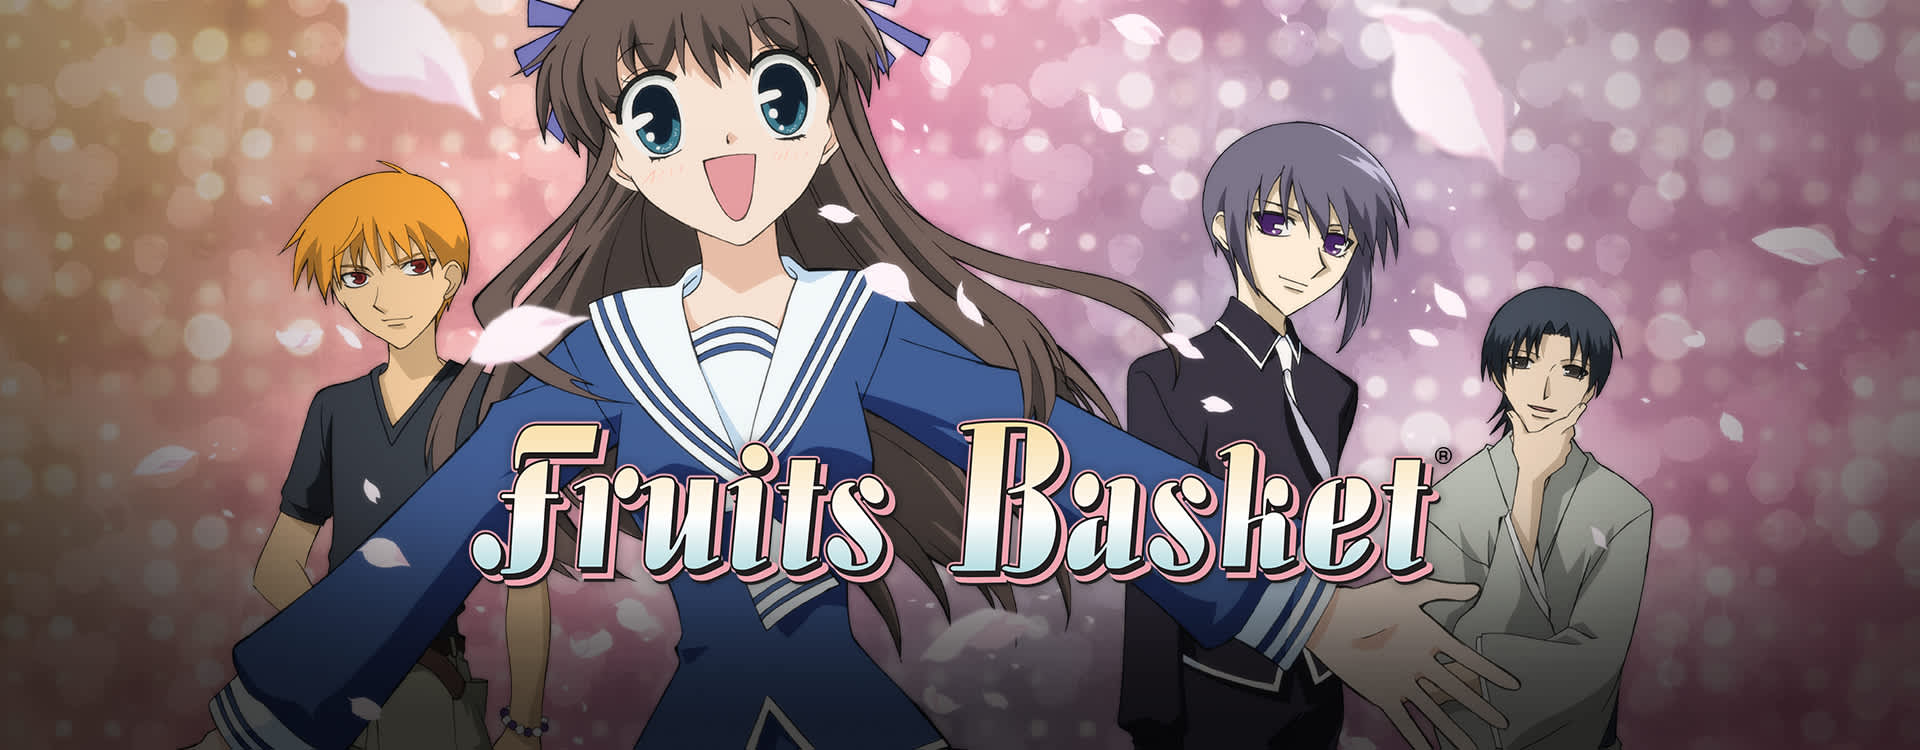 A header of the main cast of Fruits basket with the show's title superimposed over top